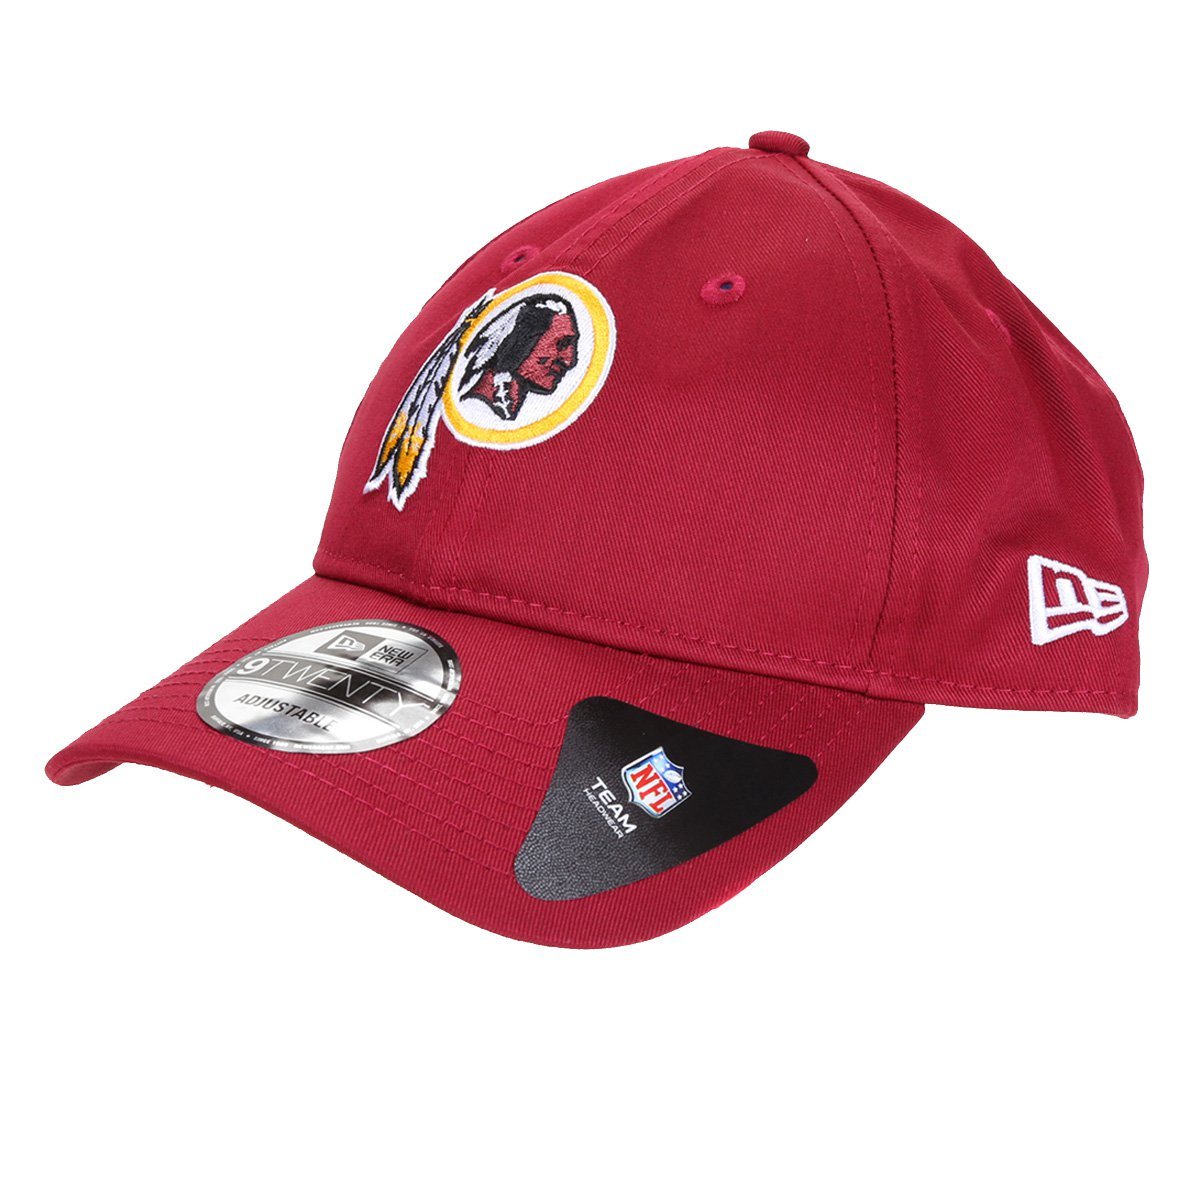 Boné New Era NFL Washington Redskins Aba Curva Strapback 920